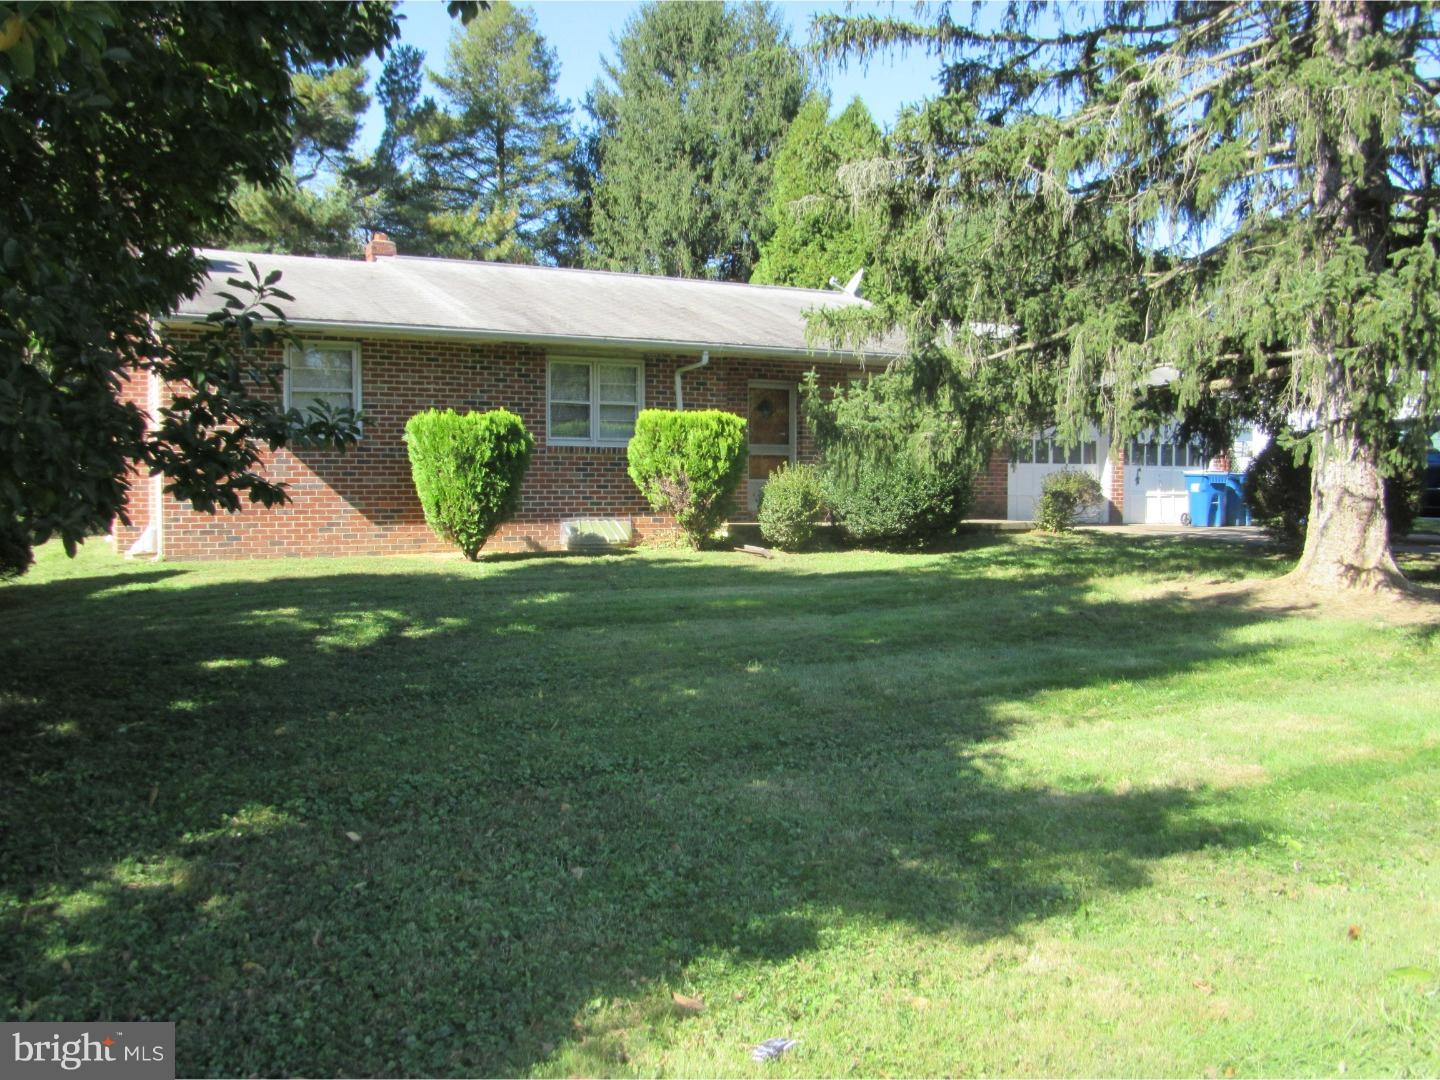 INVESTOR ALERT!!! FIXER UPPER!!! A non-development type setting for this 3 BR 2 Ba Ranch home with a